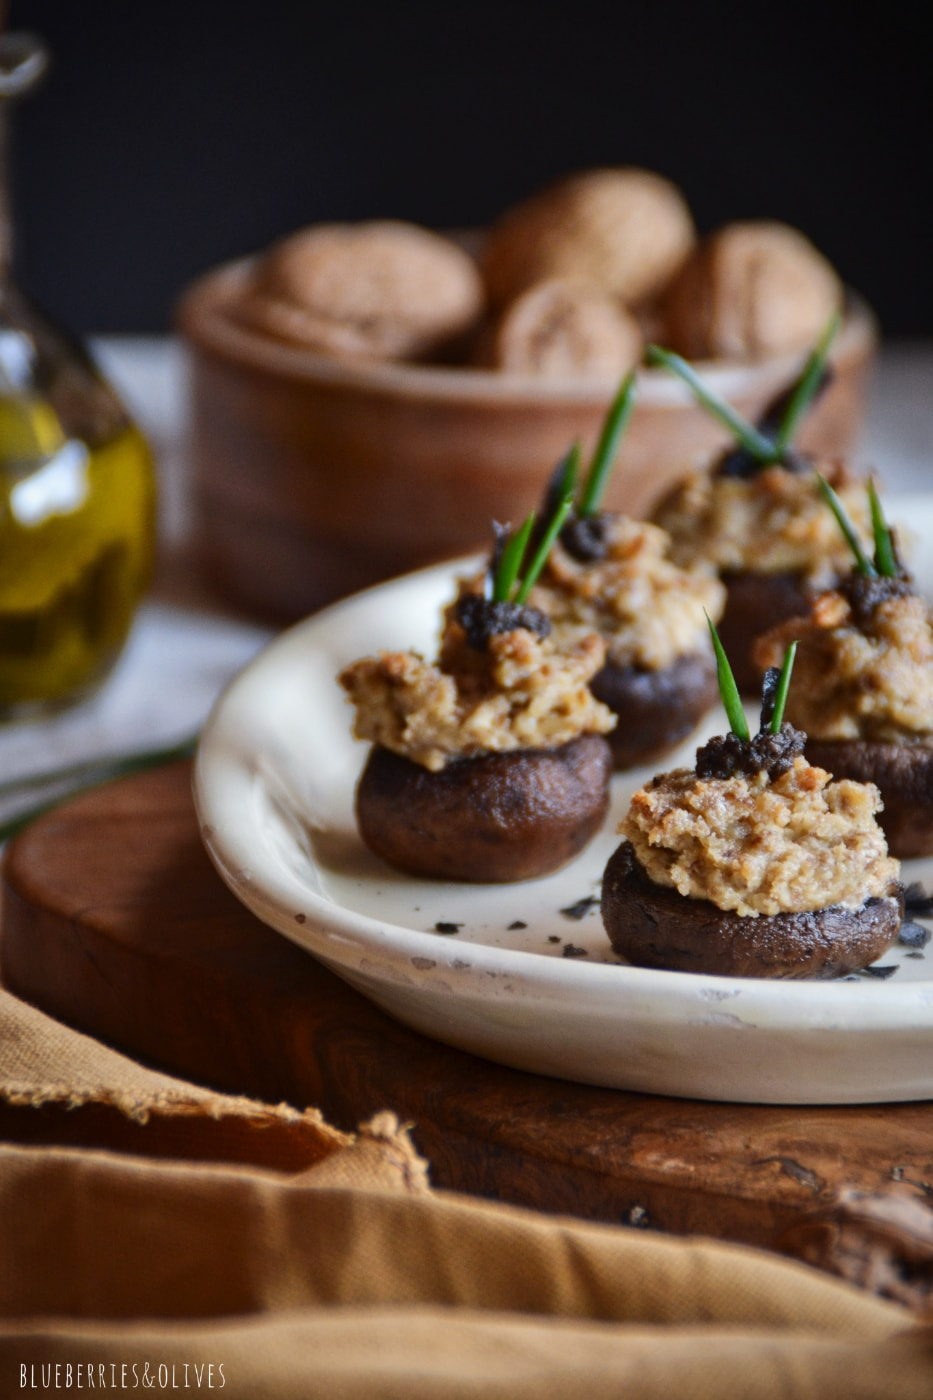 STUFFED MUSHROOMS WITH WALNUT TRUFFLE PÂTÉ IN A WHITE PLATE, DARK BACKGROUND